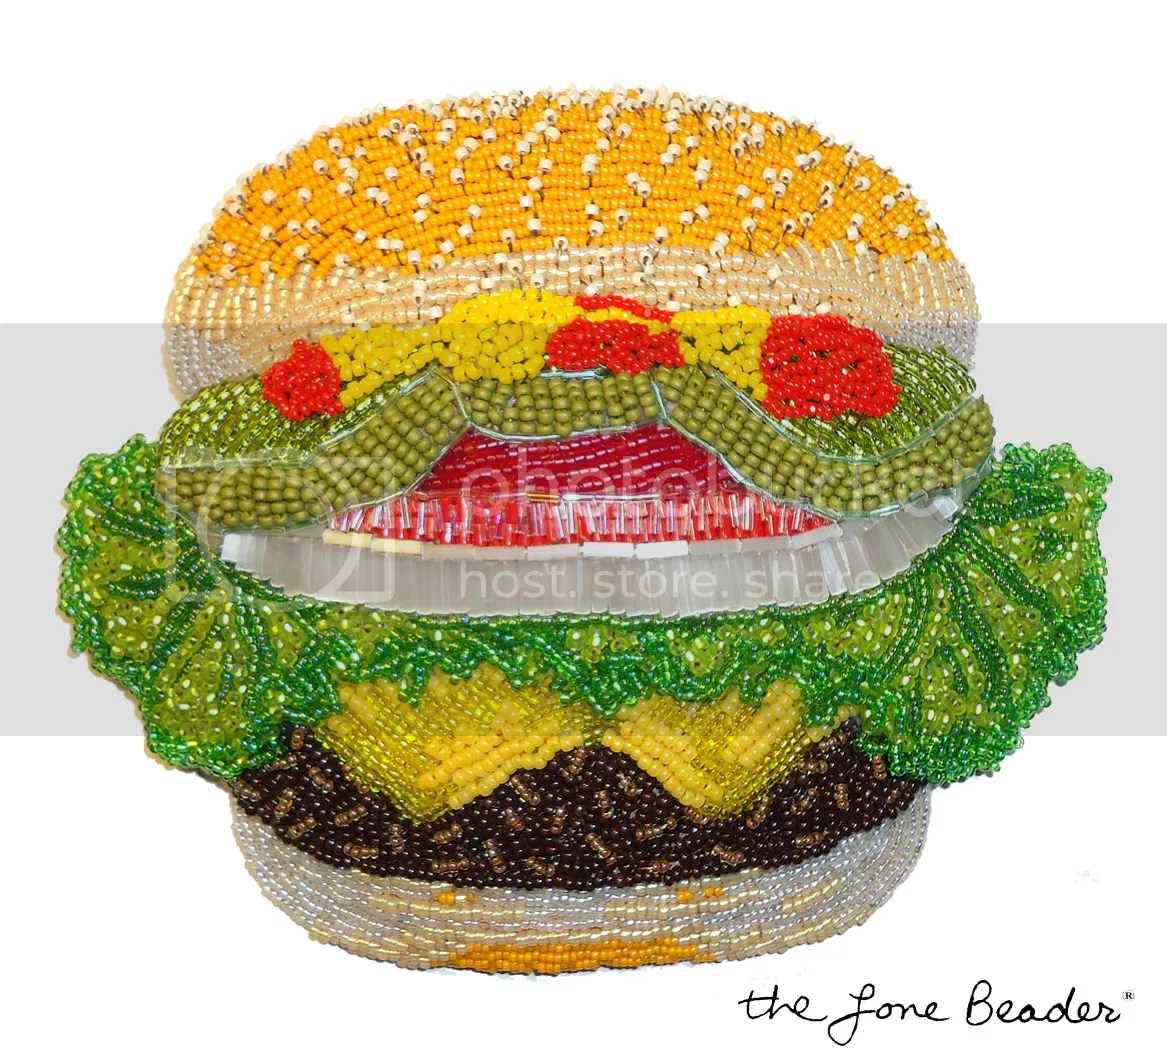 beaded burger king hamburger cheeseburger big mac veggie bead embroidery beadwork